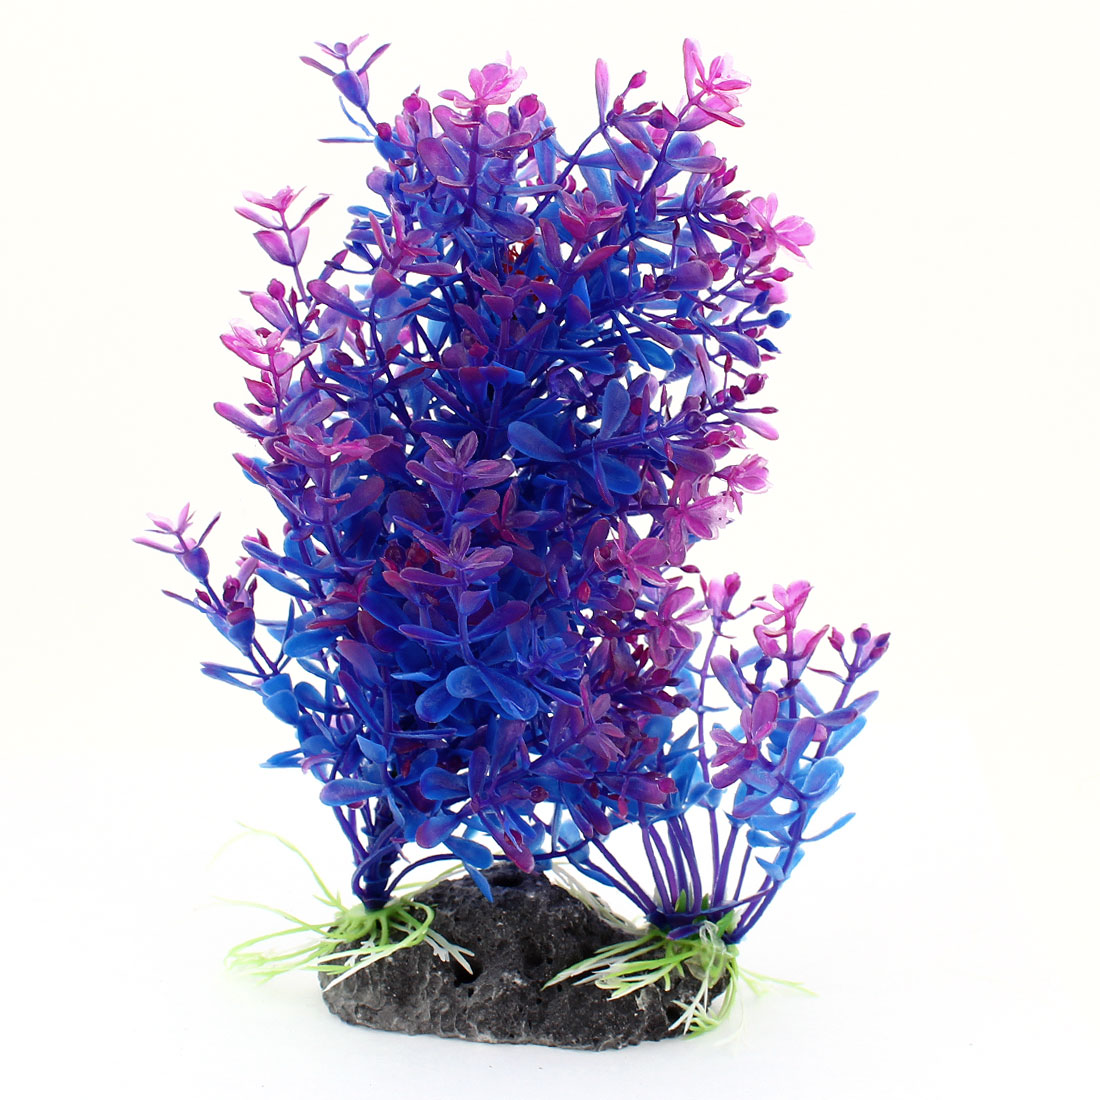 "Ceramic Base 7.9"" High Blue Purple Manmade Plastic Plant Grass for Fish Tank"